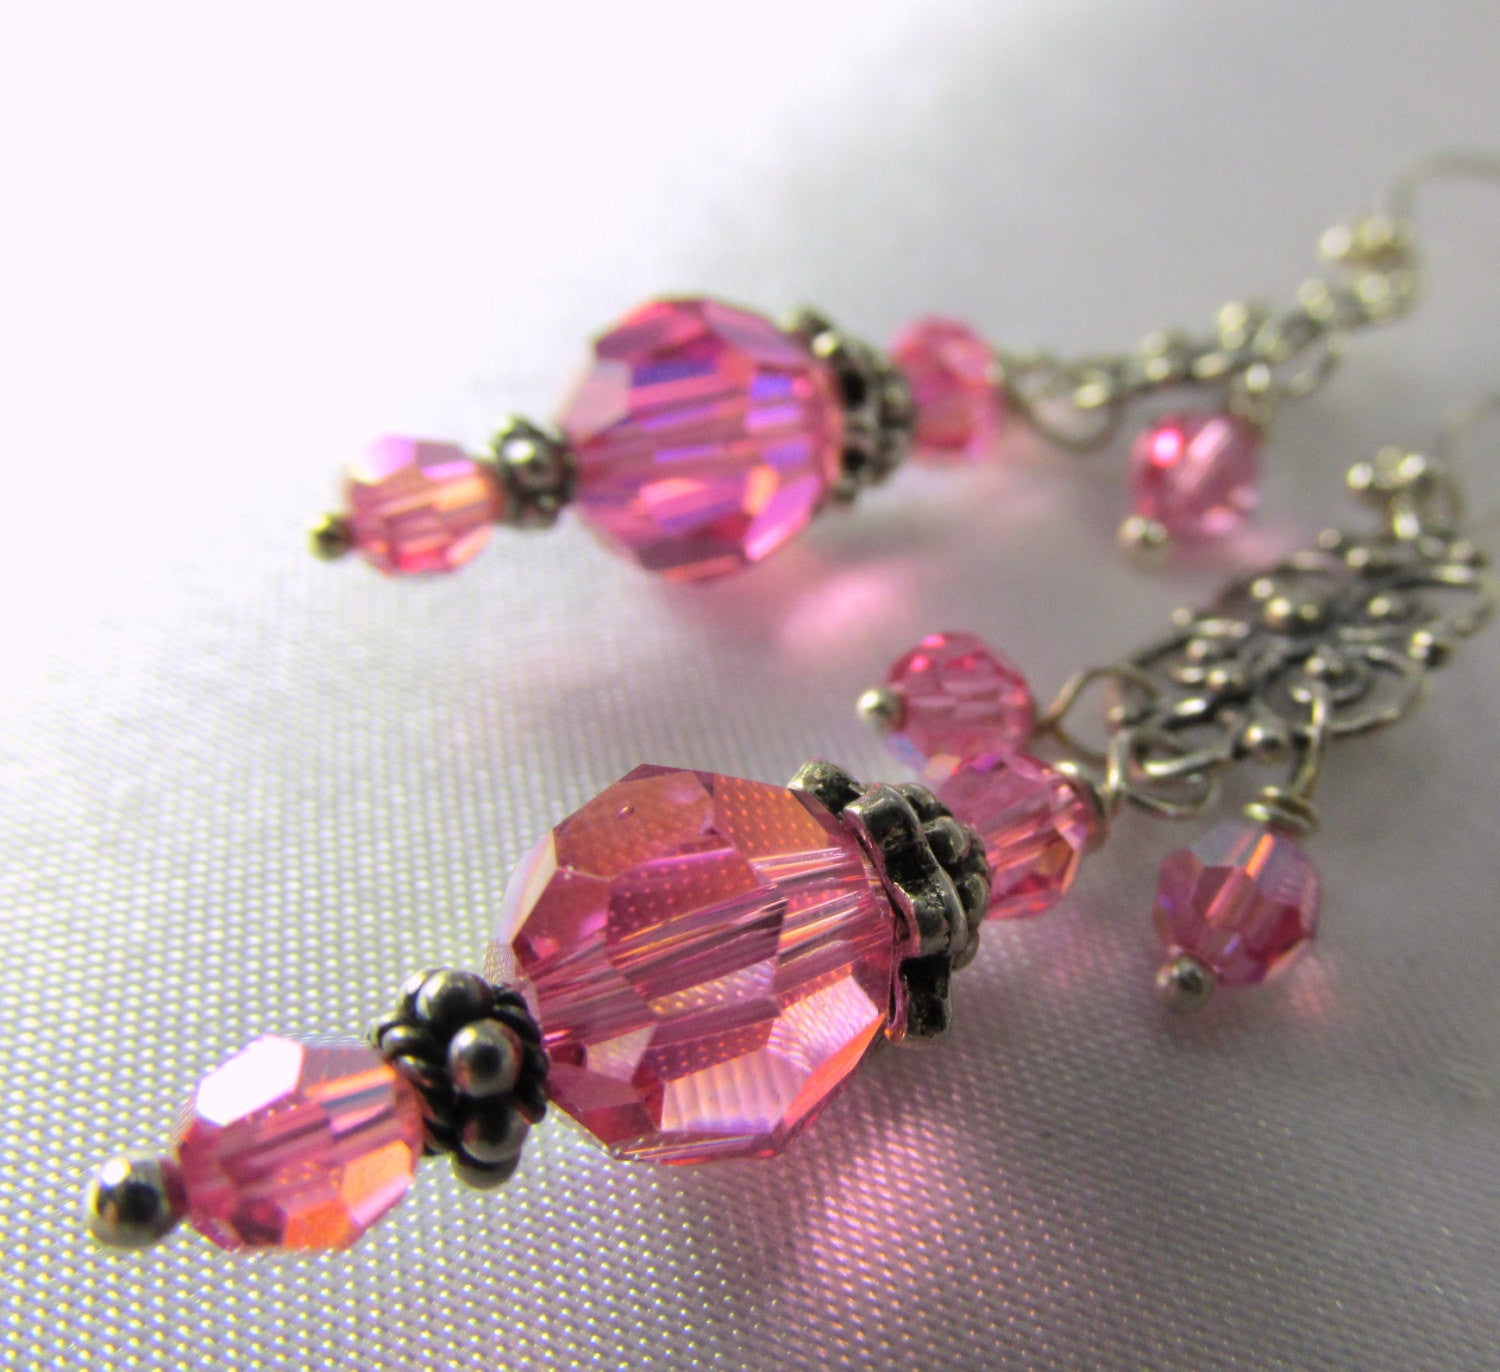 Swarovski Pink Rose Crystal Filigree Silver Earrings with all Sterling Silver Metal - Odyssey Creations